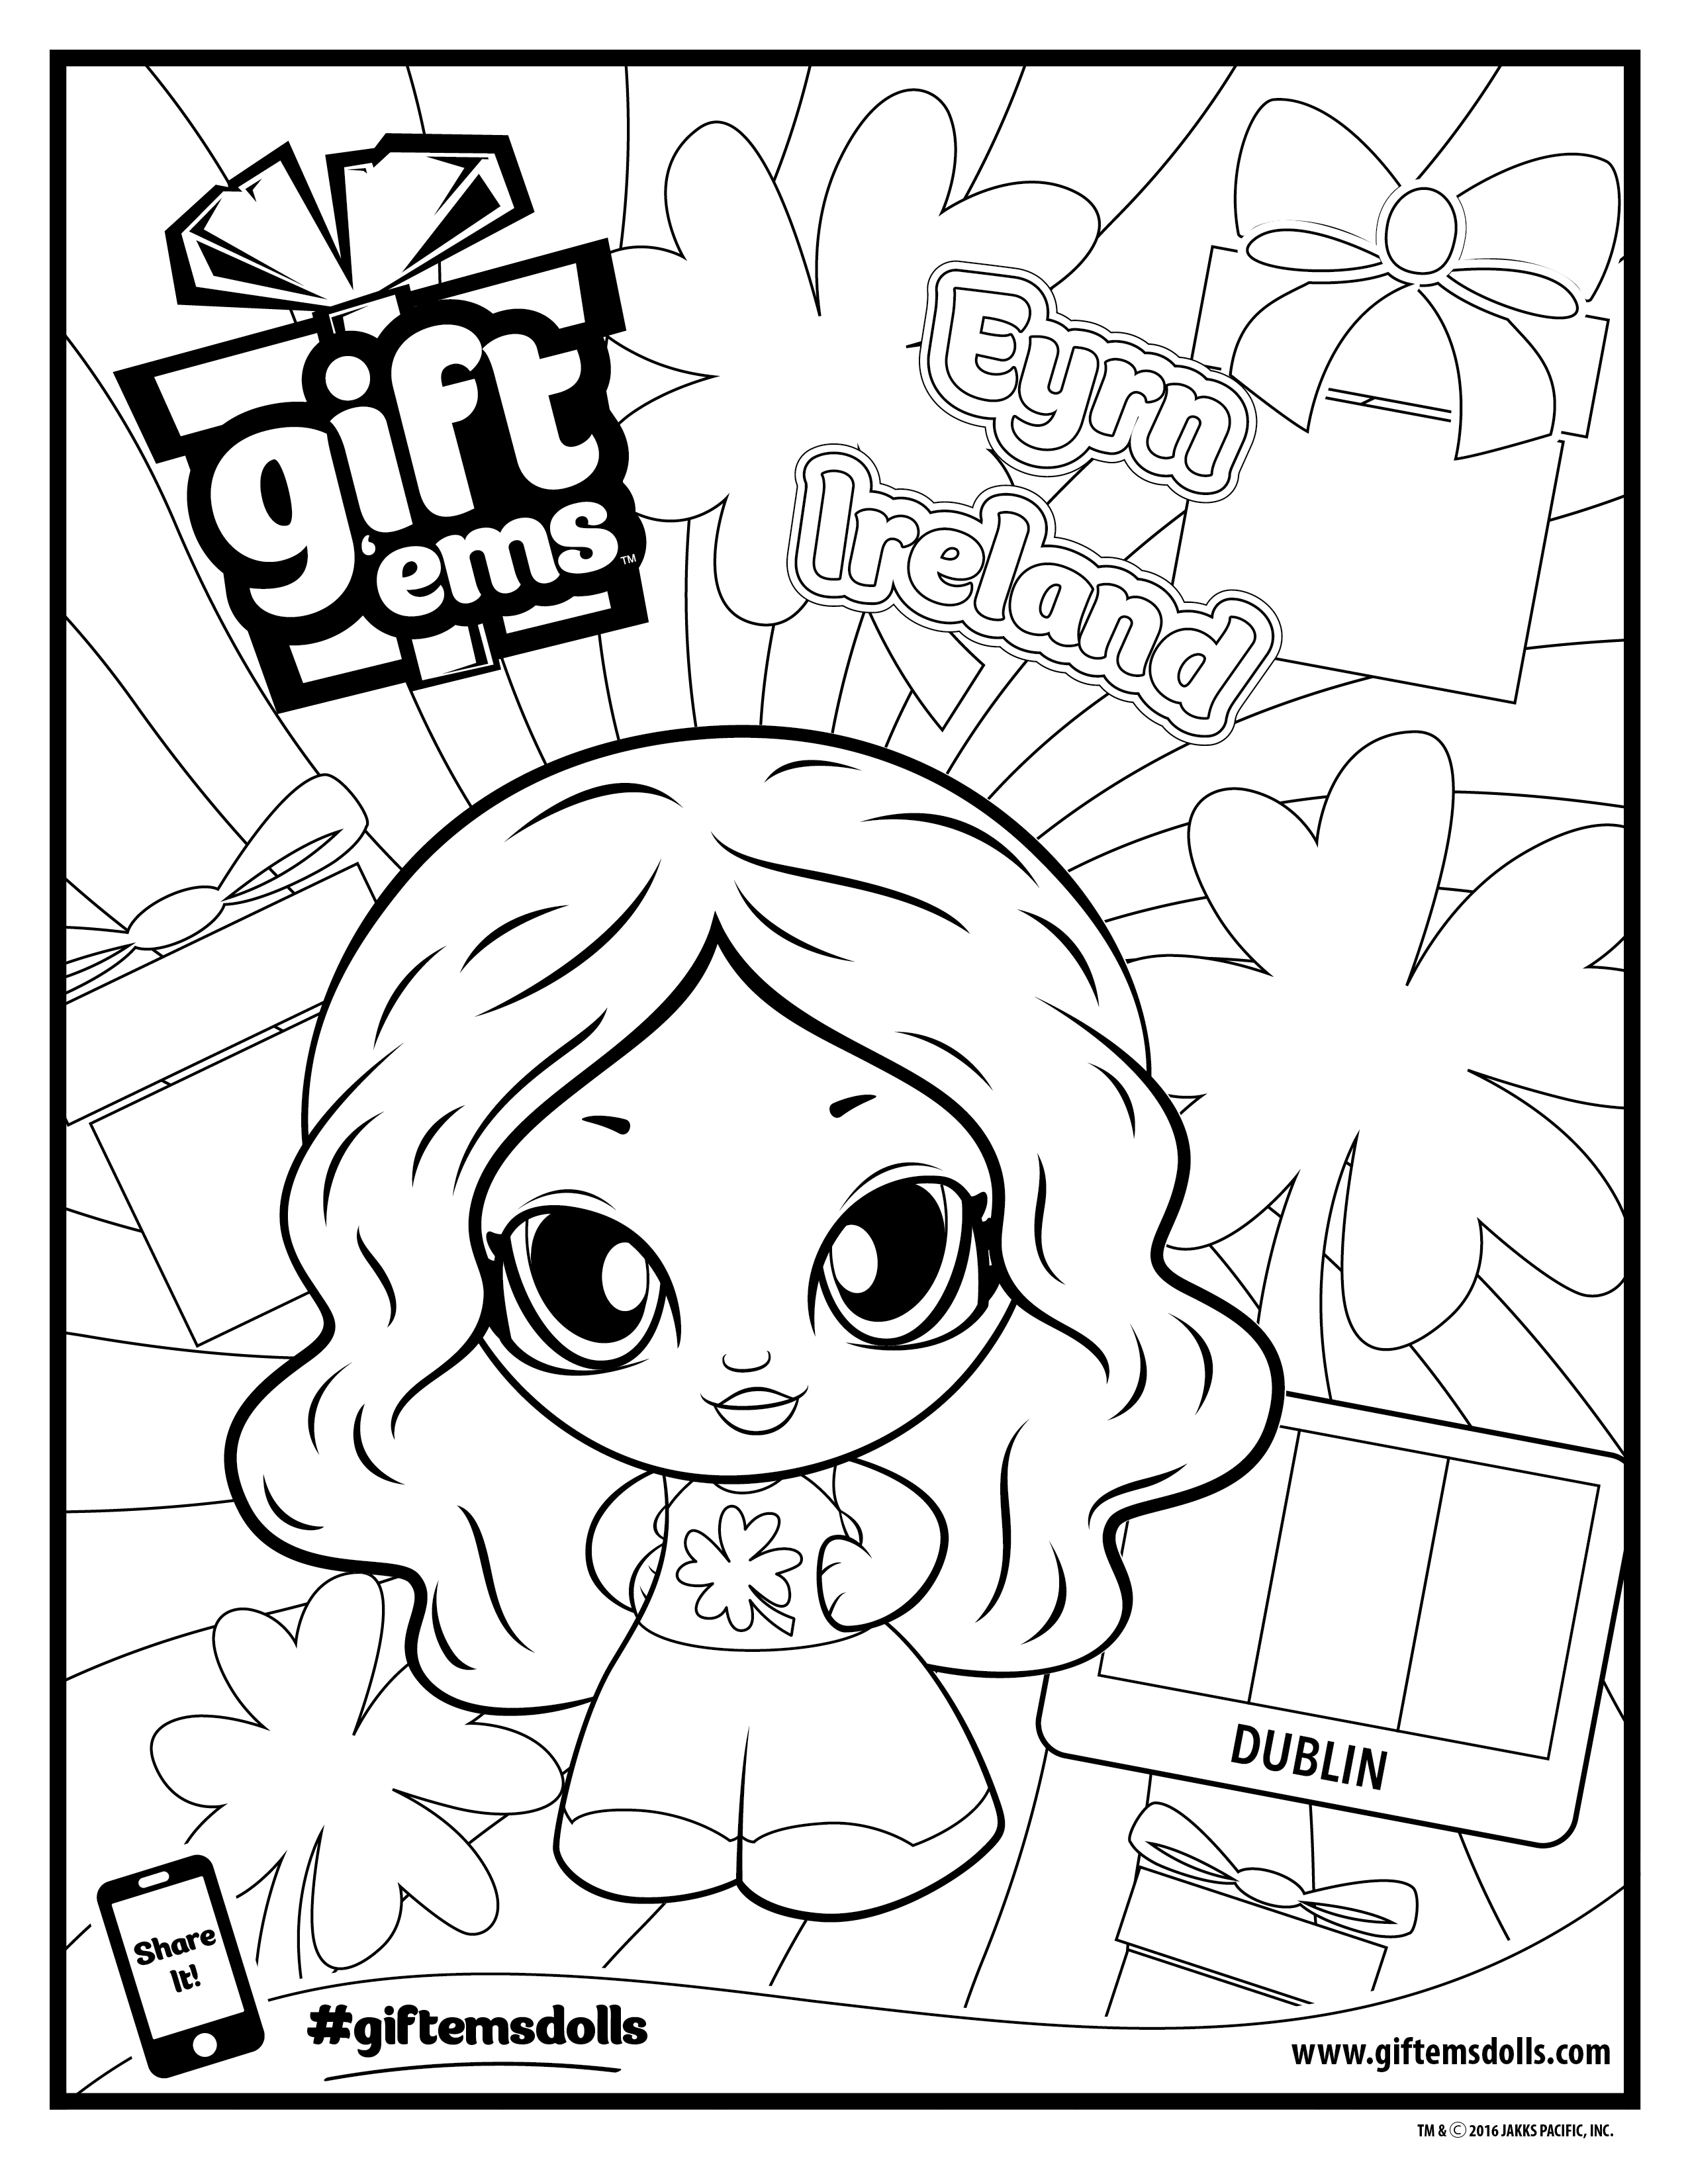 2550x3300 Secrets Ems Coloring Pages Downloads Gift Birthday Party